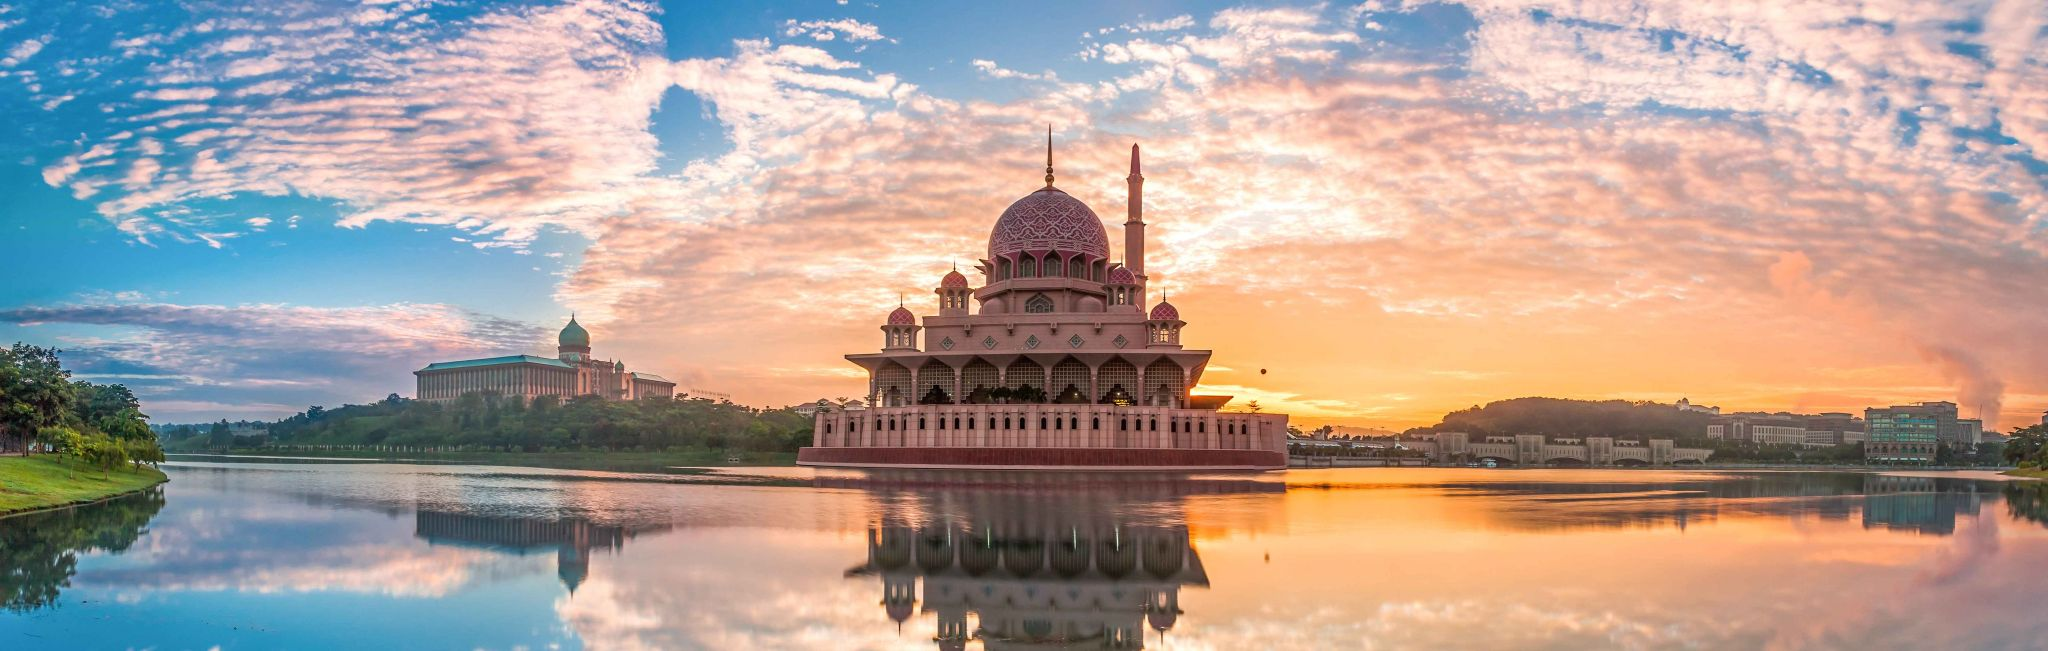 A reflection of the Putra Mosque at sunset in Malaysia.